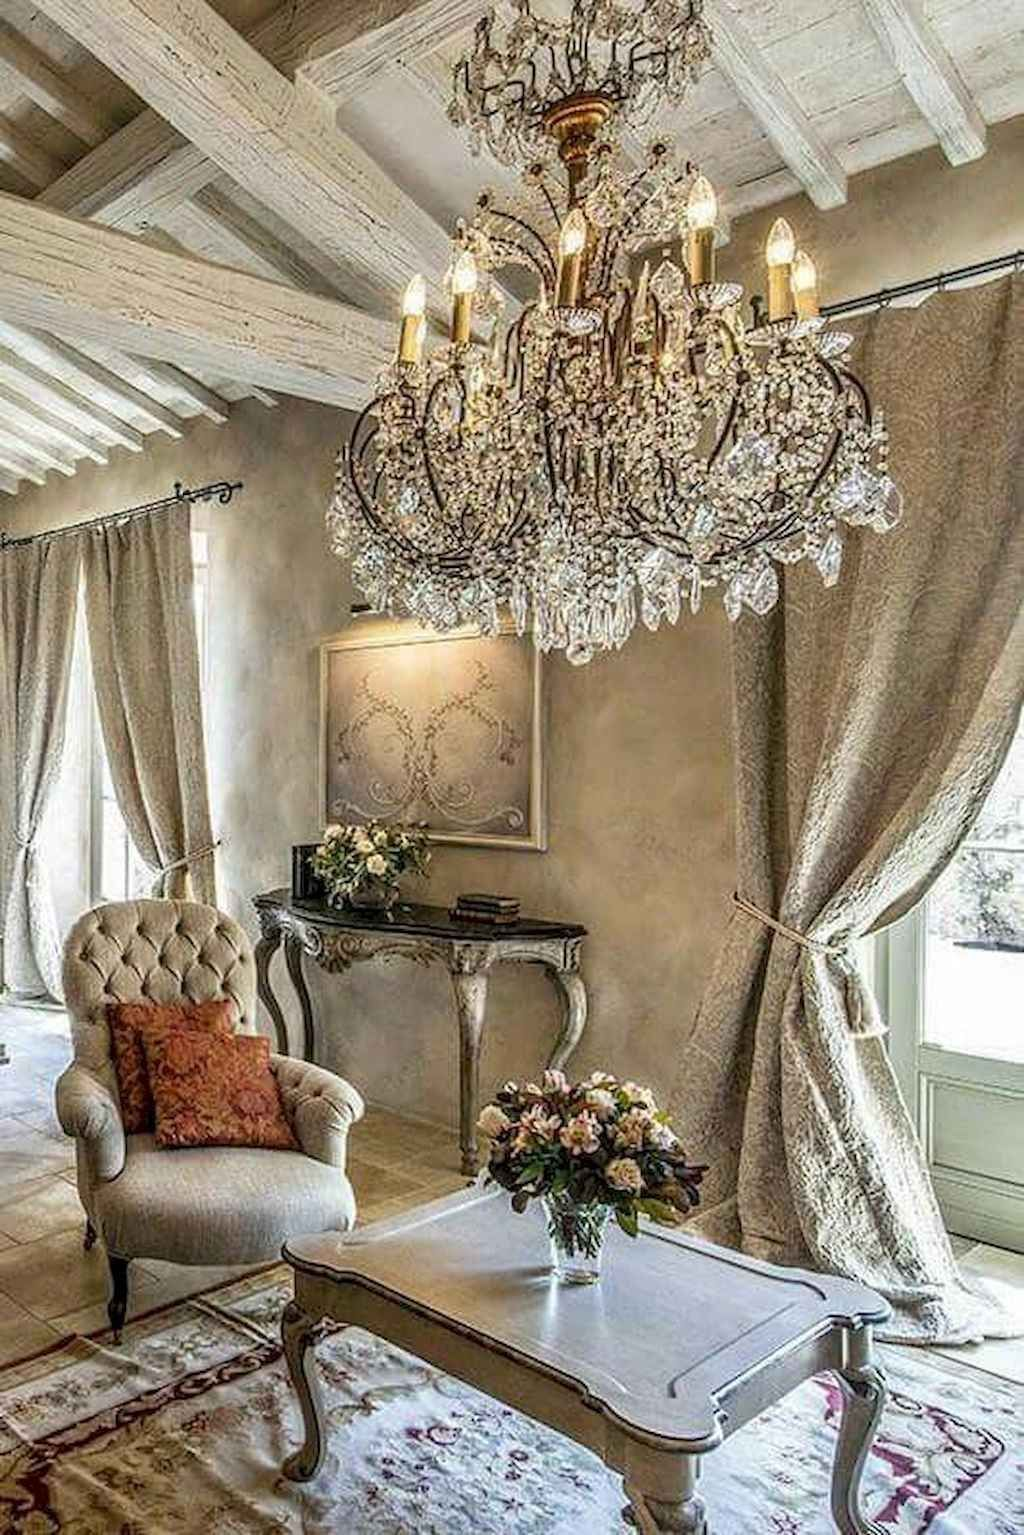 30 Stunning French Home Decor Ideas That You Definitely Like In